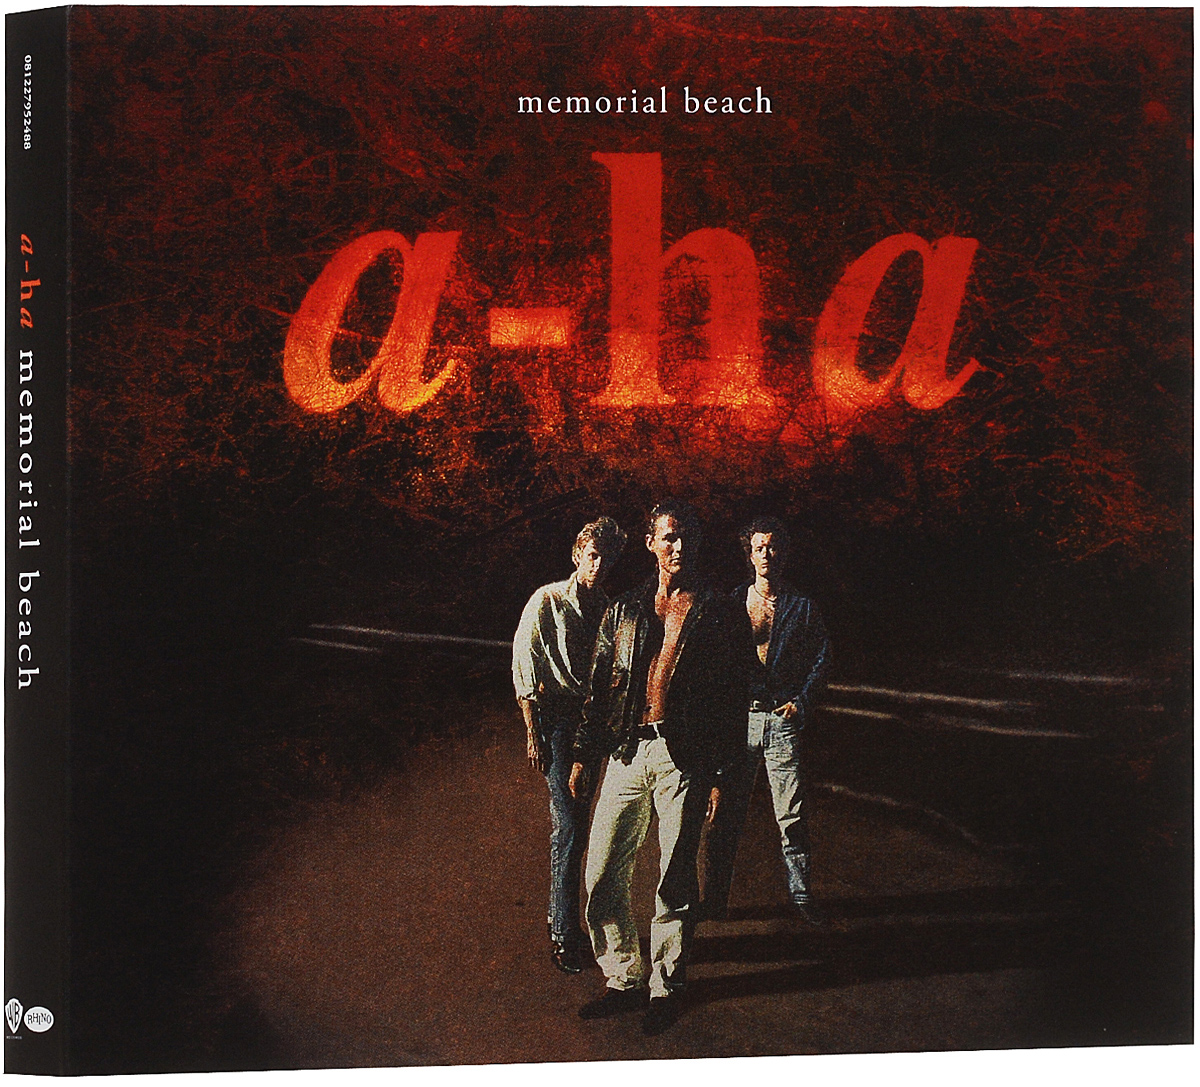 A-Ha A-Ha. Memorial Beach. Deluxe Edition (2 CD) cd a ha hunting high and low deluxe edition